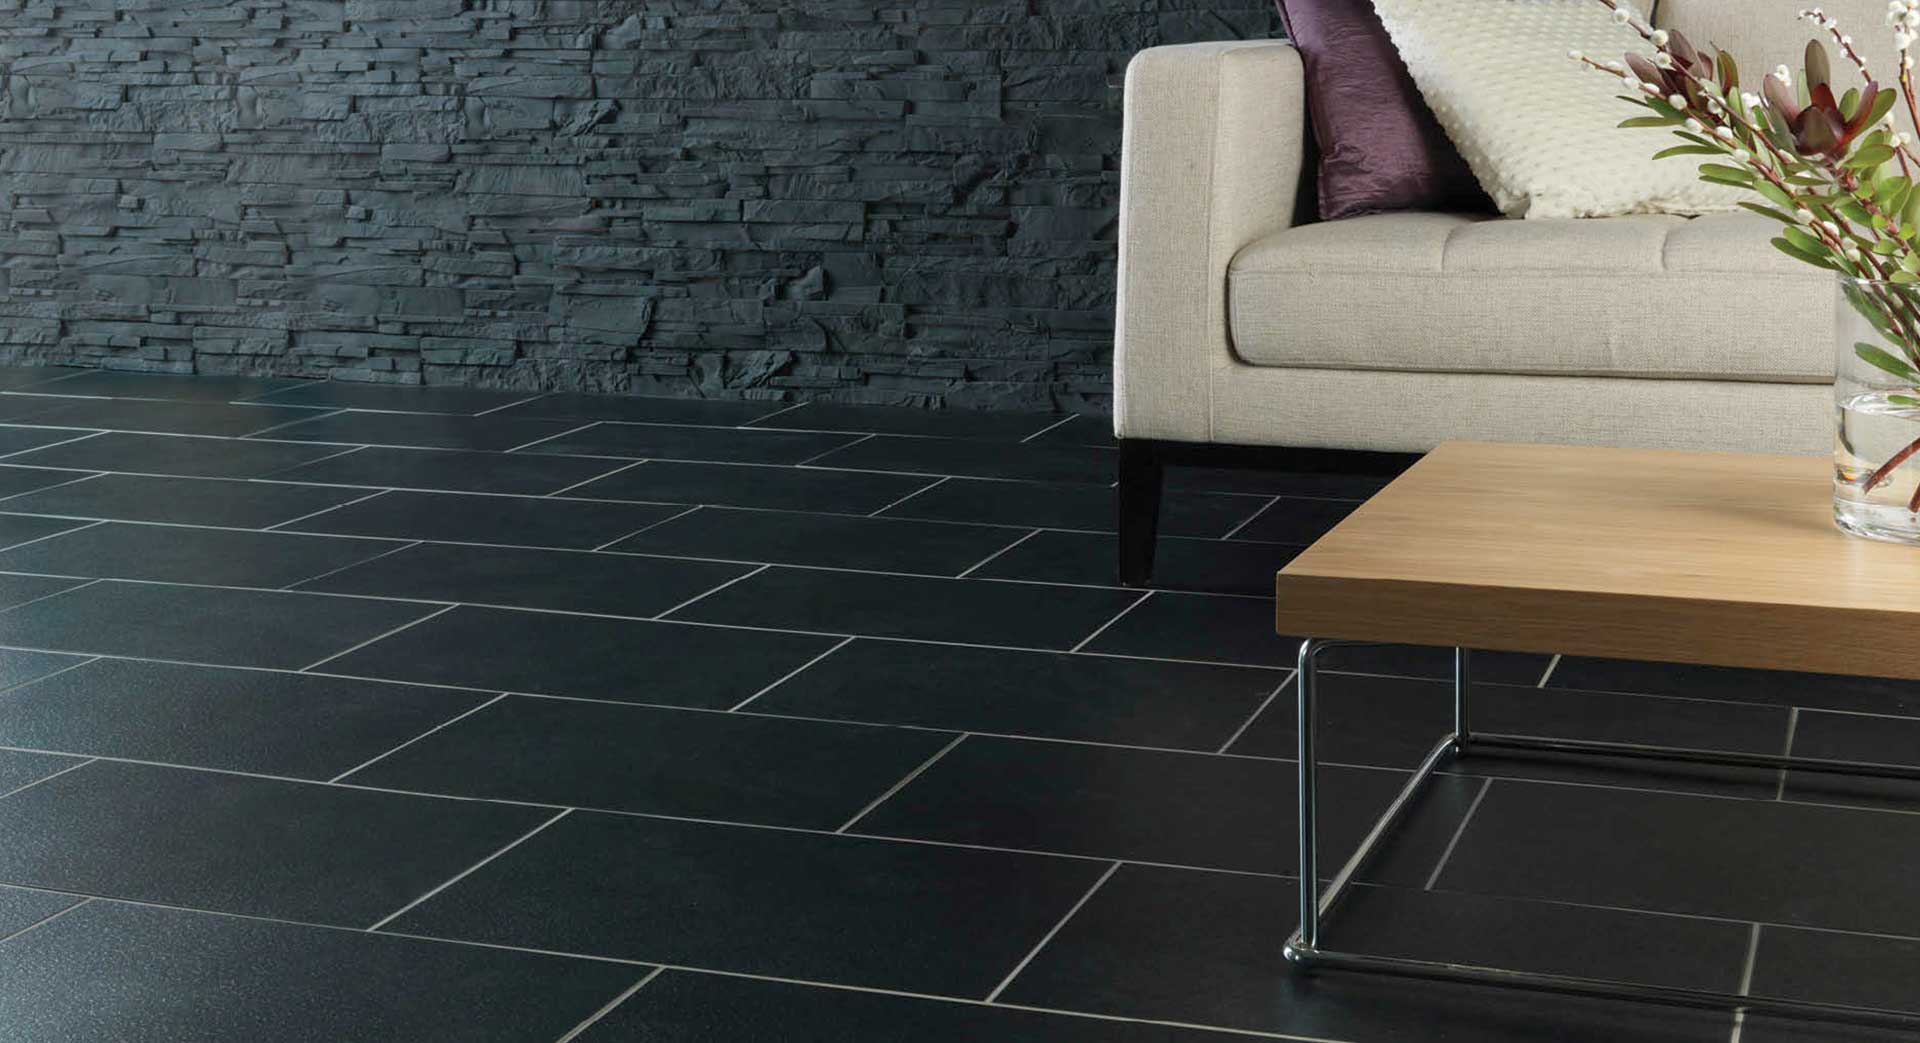 SCI Flooring Inc Your Commercial Flooring Provider Michigan - Ceramic tile stores michigan